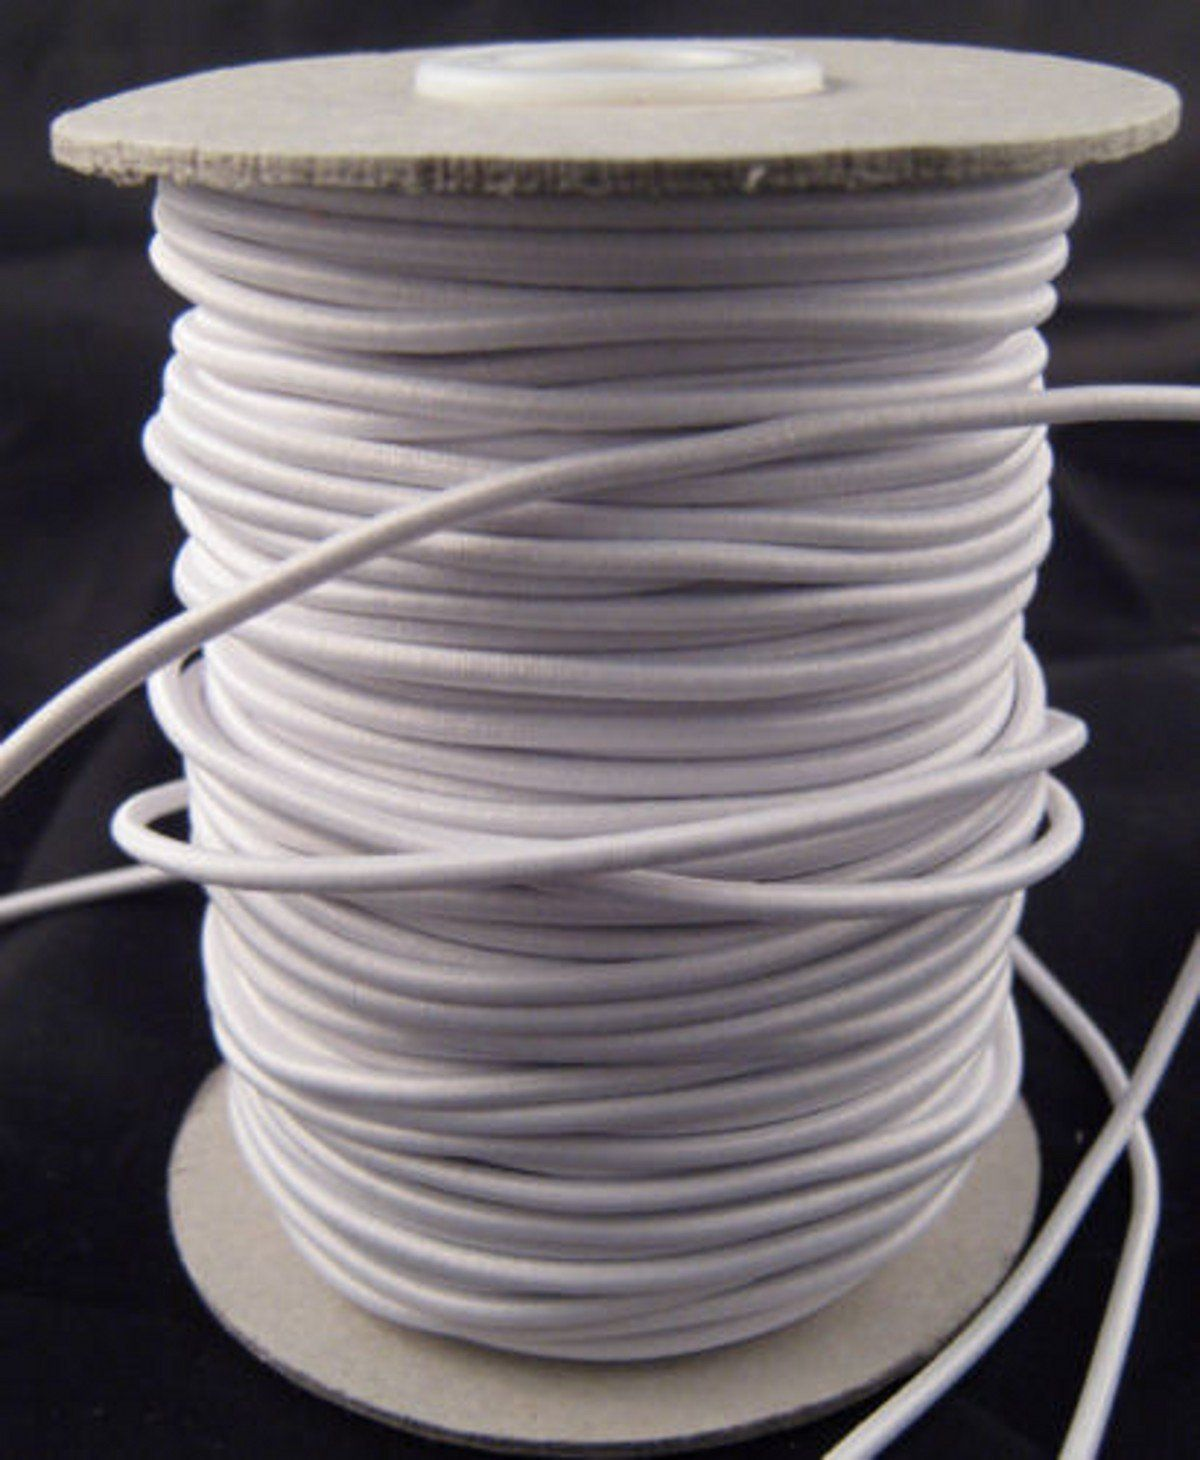 Chengyida 1 Full Roll 55 Yards White Round Elastic Cord Rope